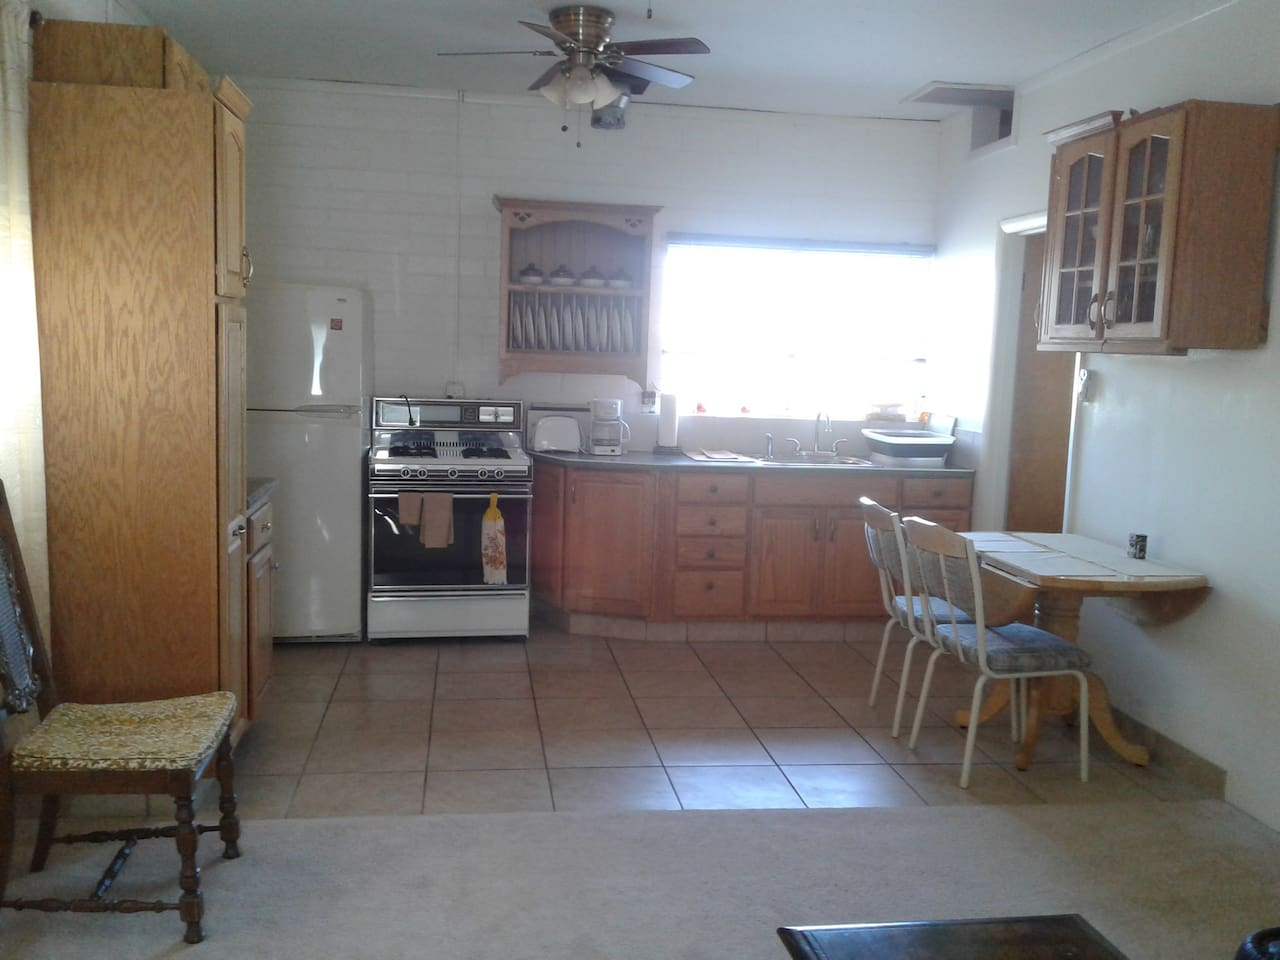 Kitchen area is fully equipped with everything one would need.